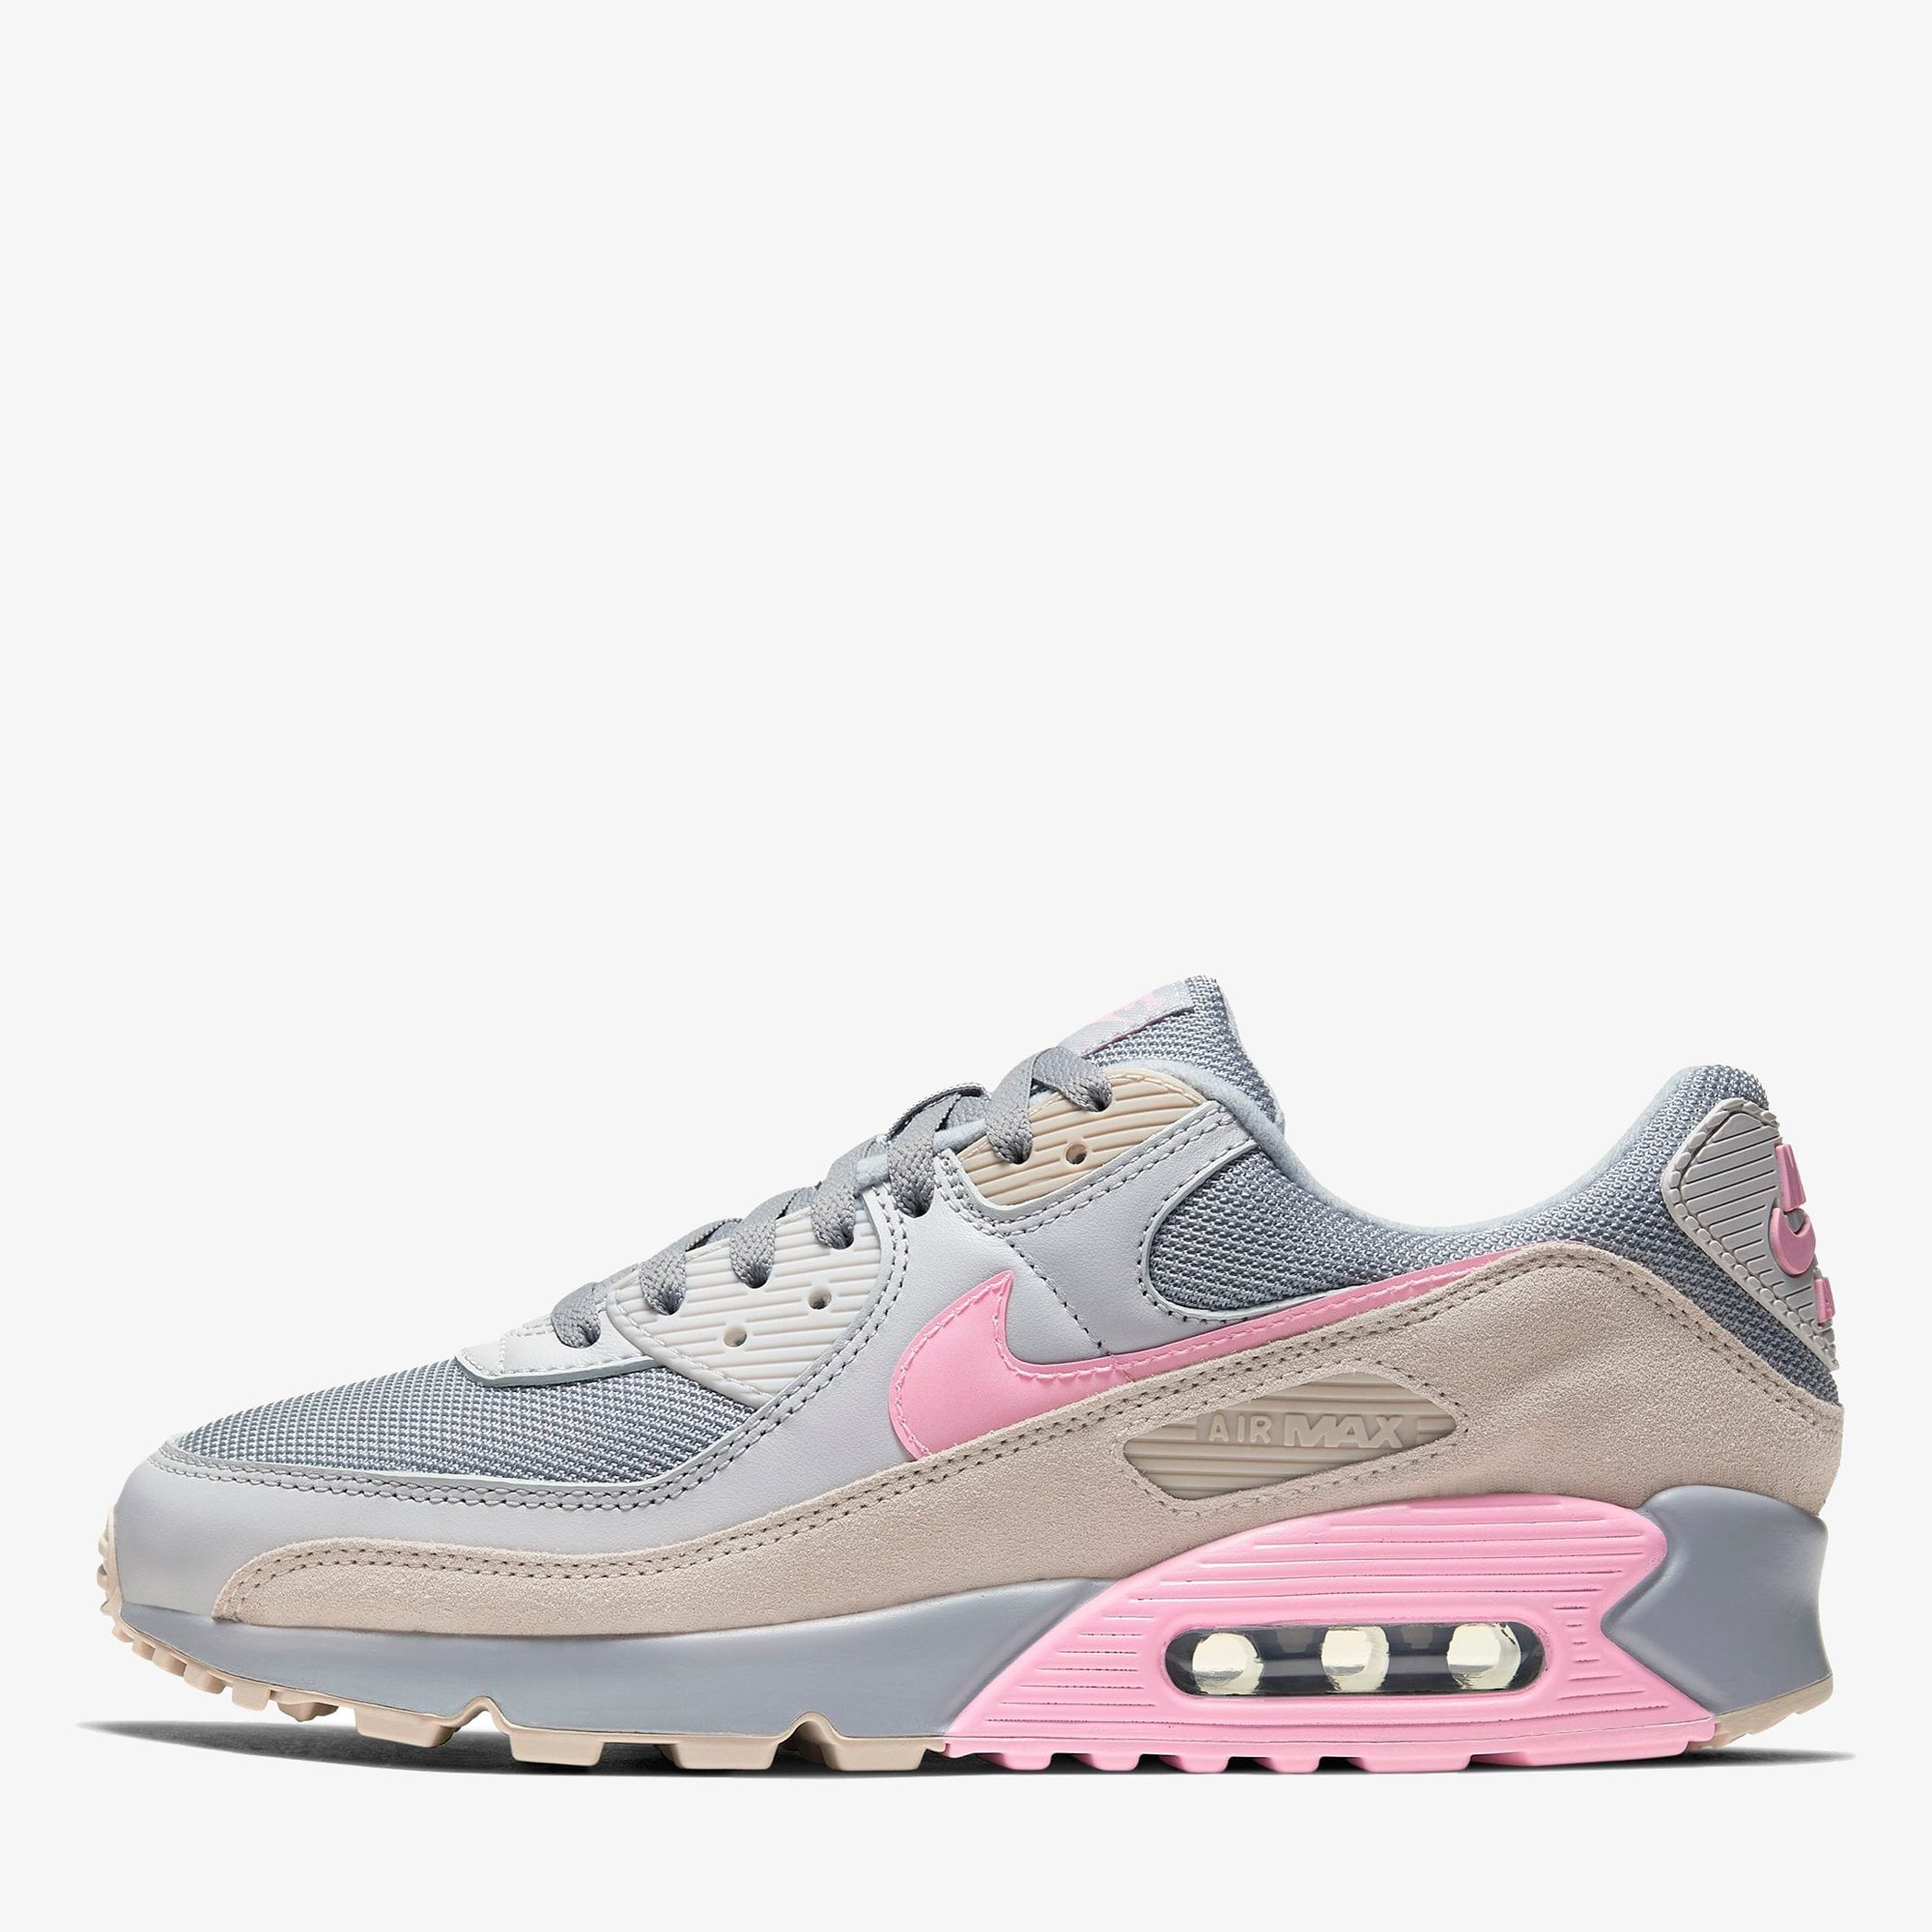 comestible Pantera suéter  Nike Air Max 90 - Vast Grey / Pink Wolf - Mens Footwear from Cooshti.com